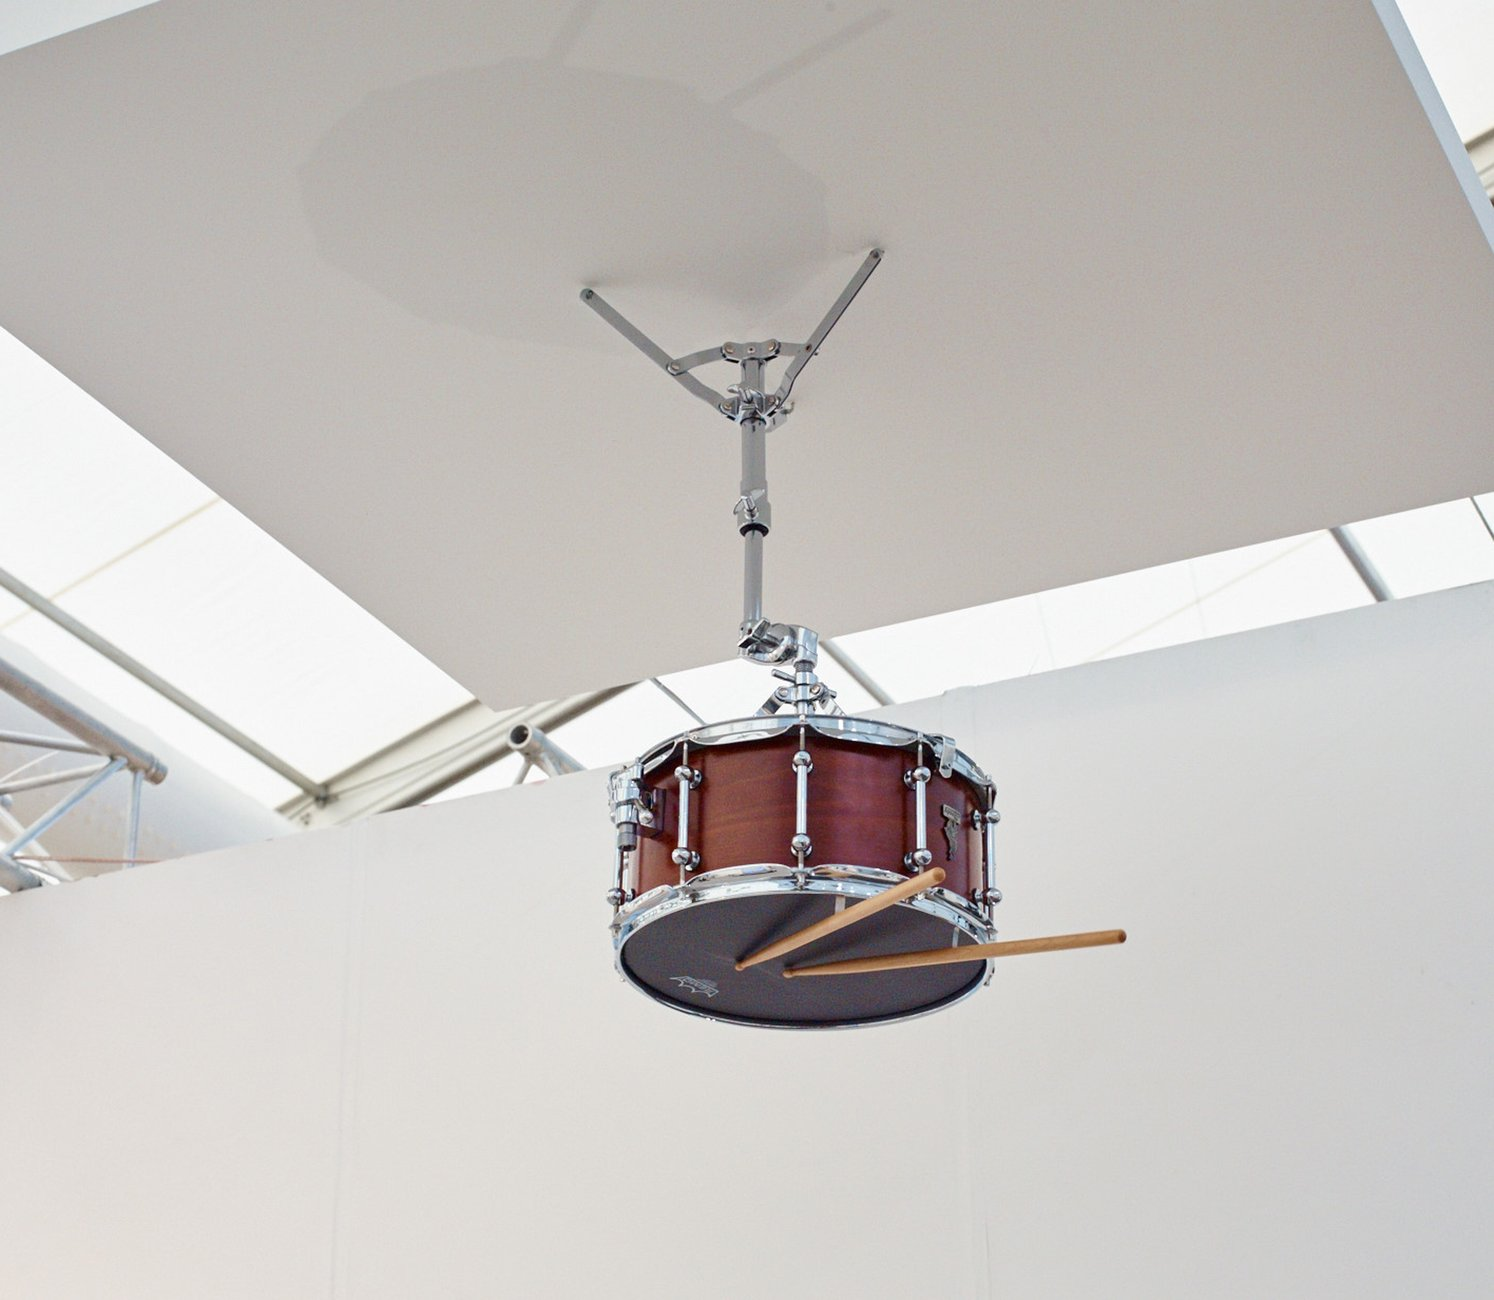 A single snare drum and two drumsticks are suspended from a ceiling panel